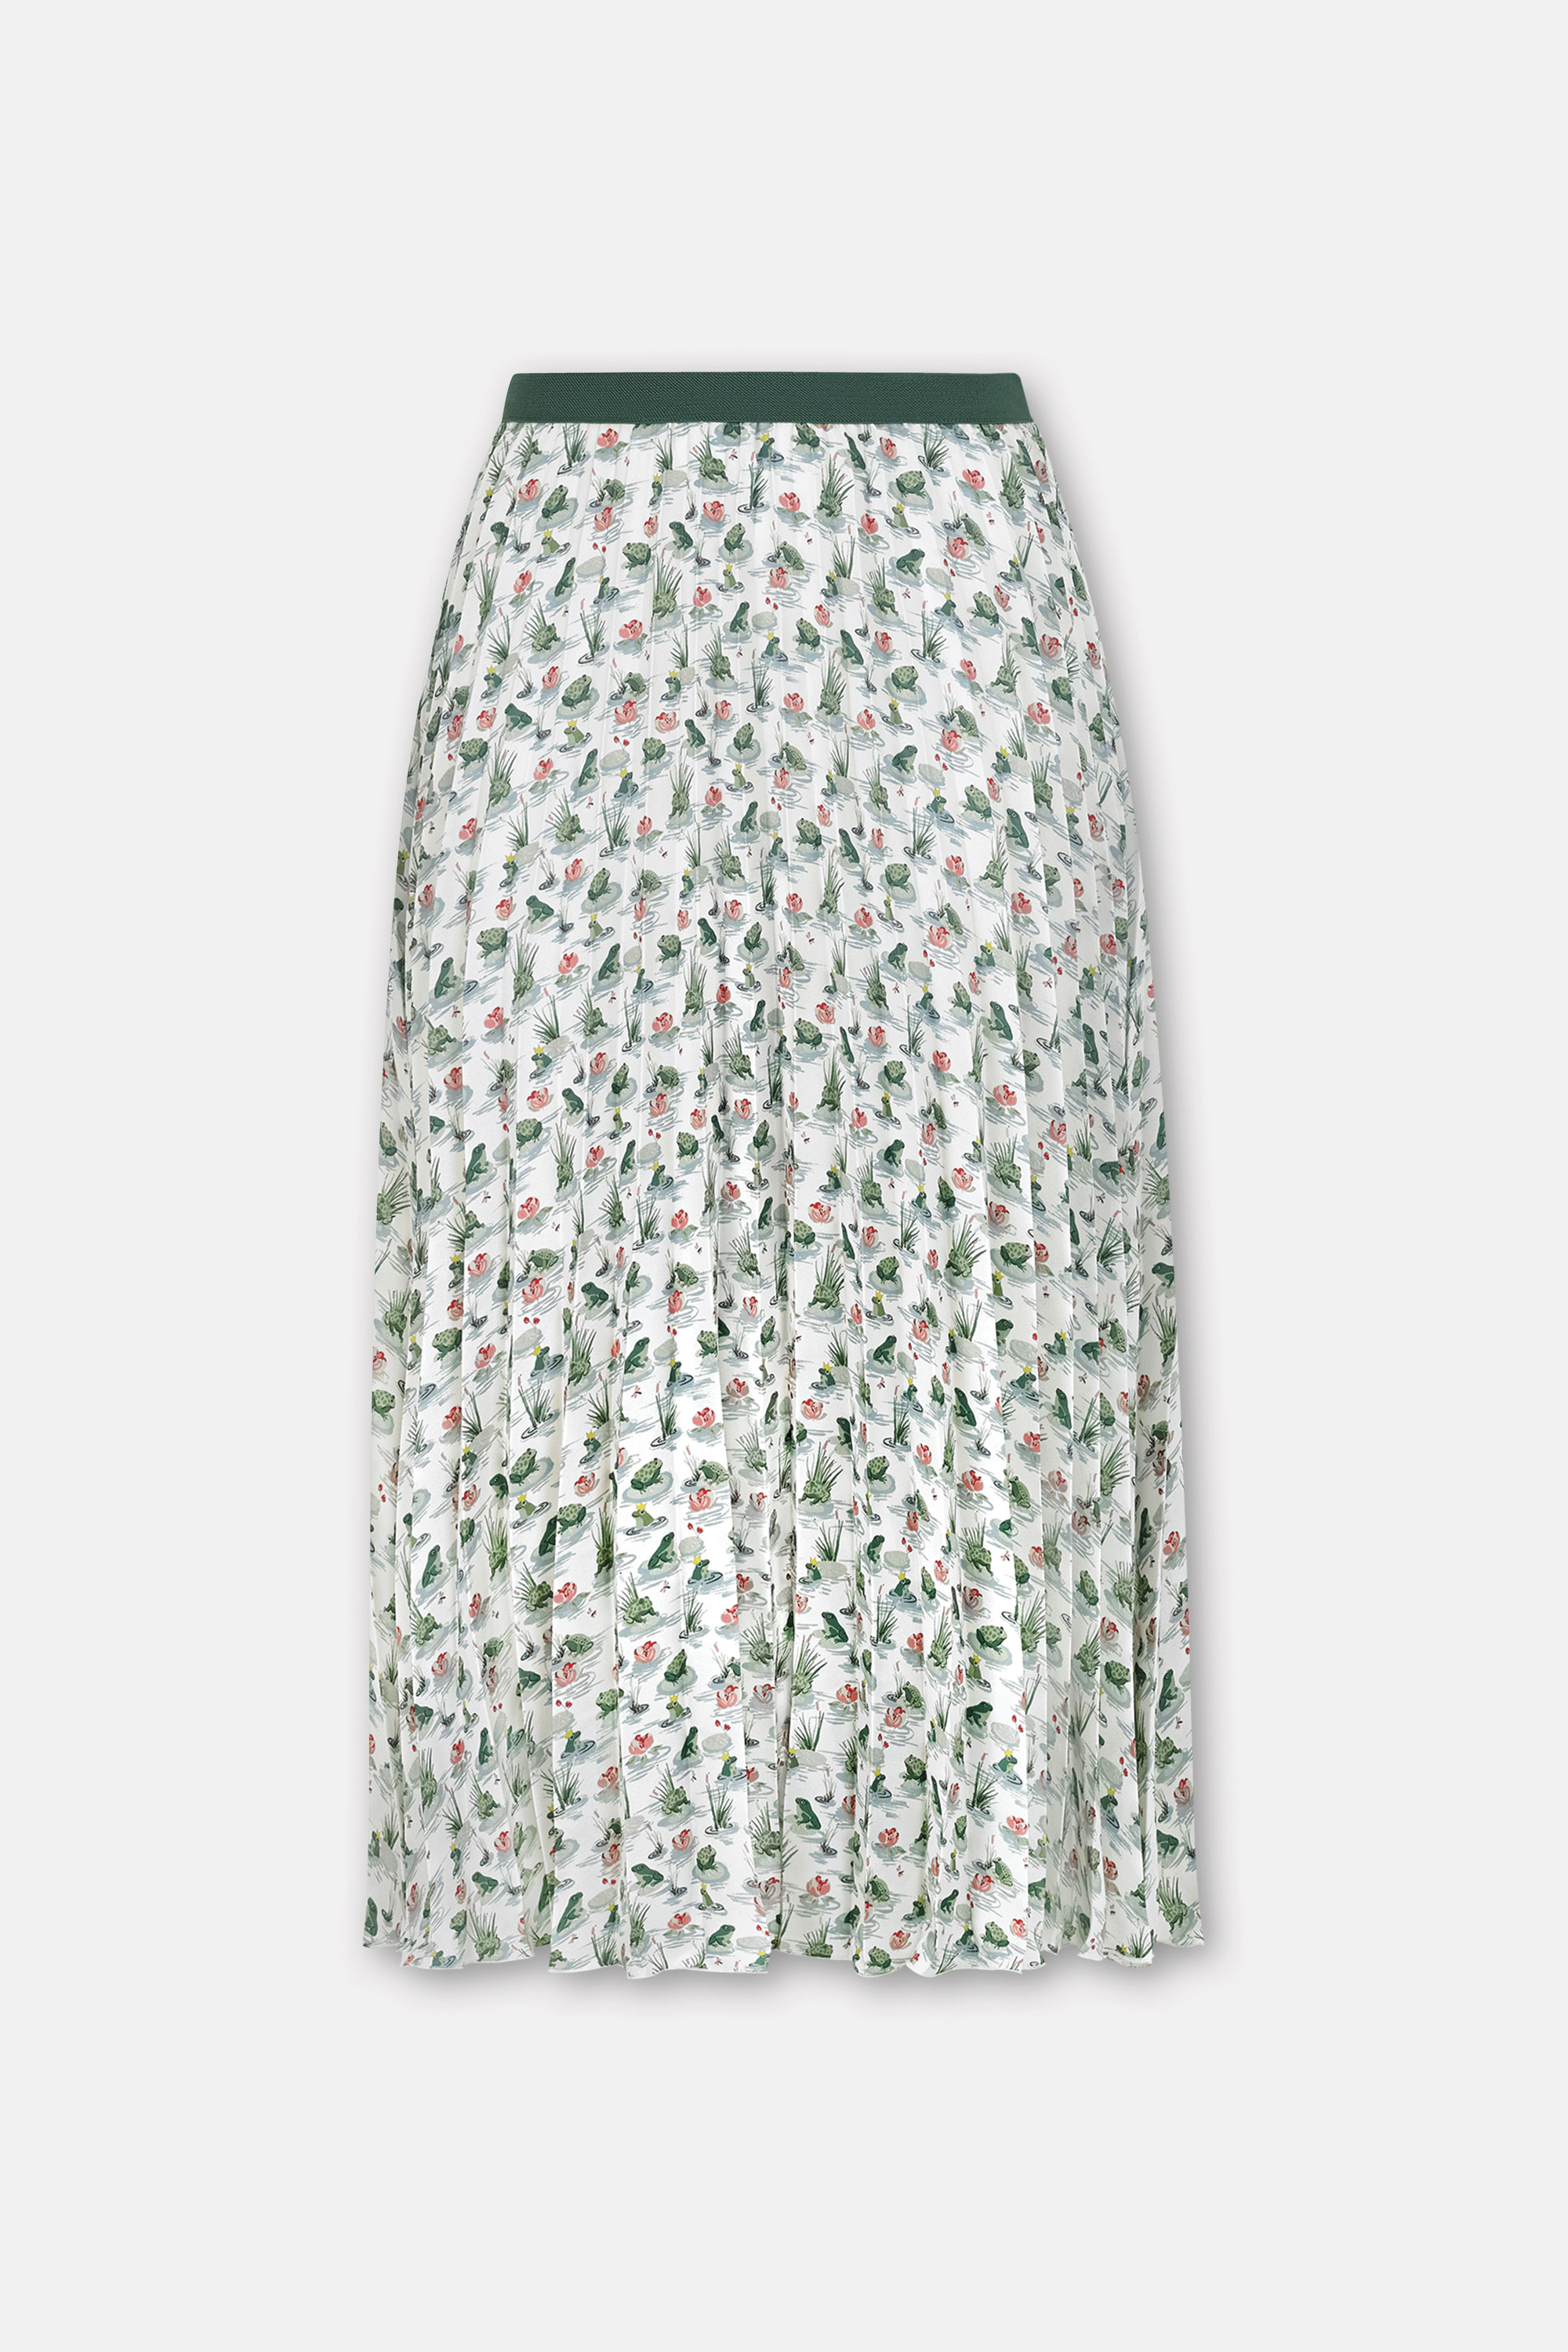 Cath Kidston Bathing Frogs Pleated Skirt in Warm Cream, Bathing Frogs Small, 100% Polyester, Size Medium